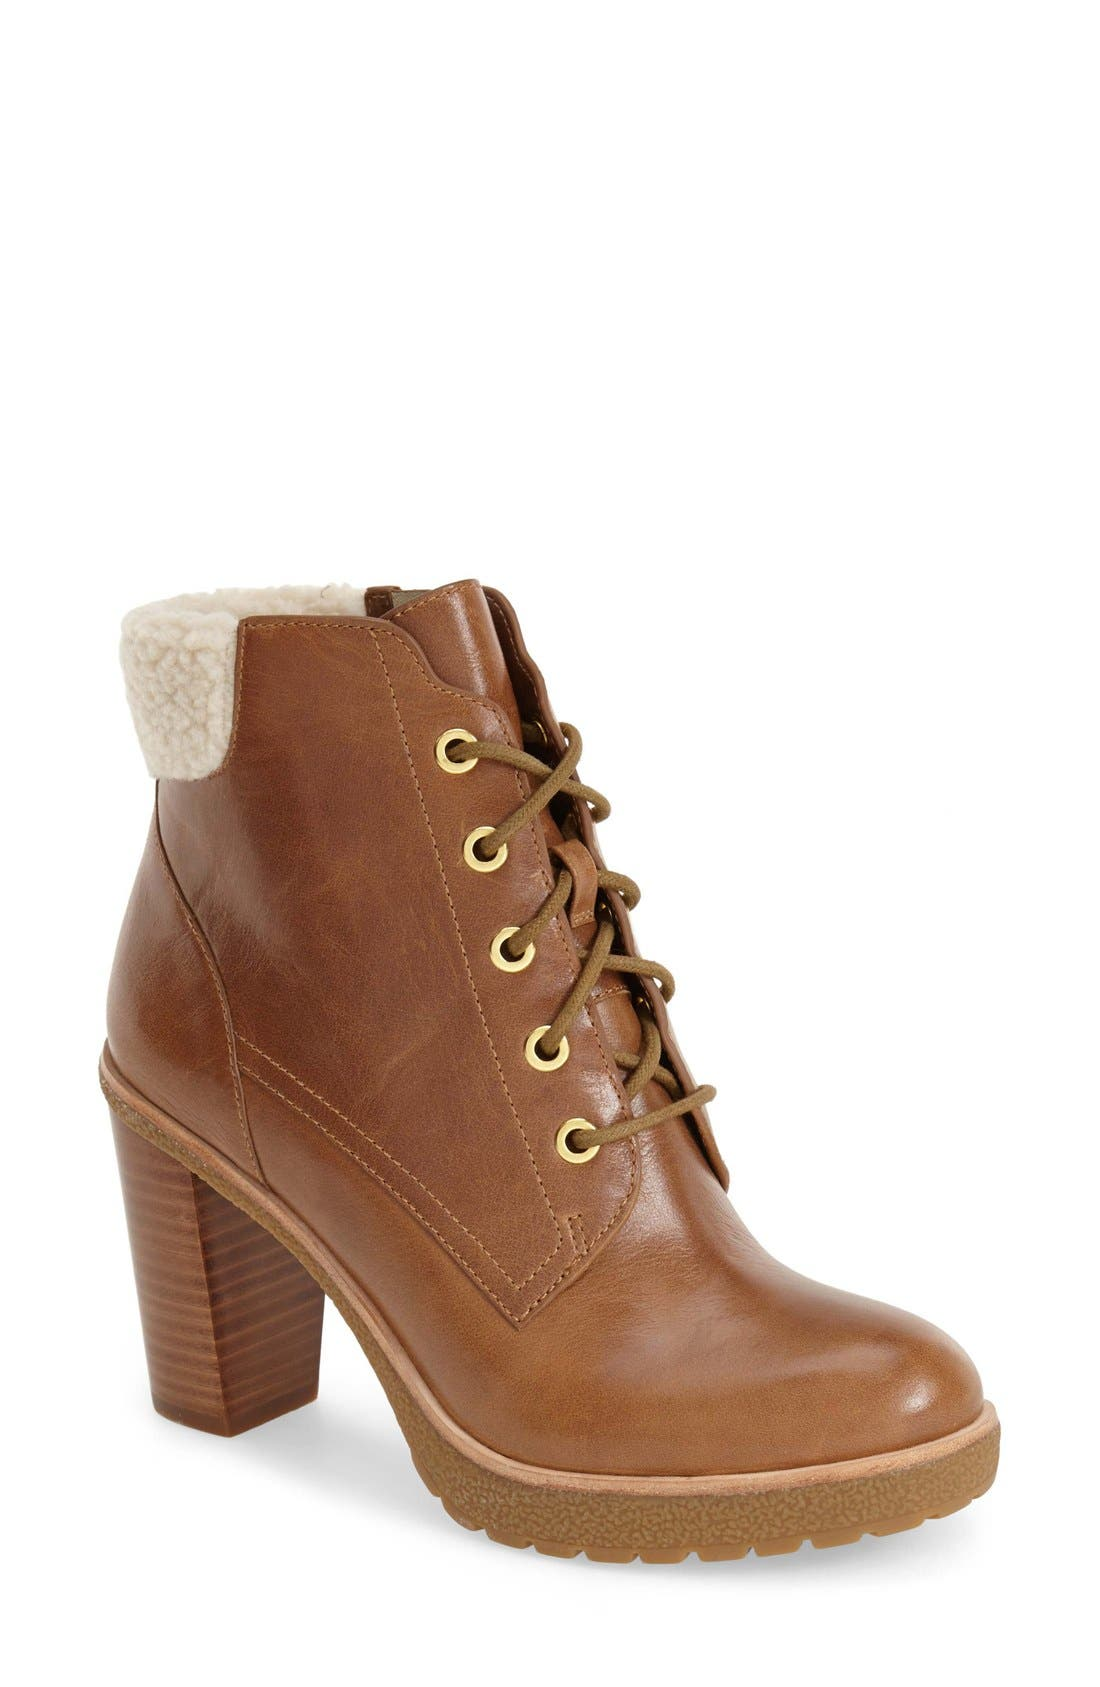 Alternate Image 1 Selected - MICHAEL Michael Kors 'Kim' Lace-Up Bootie (Women)